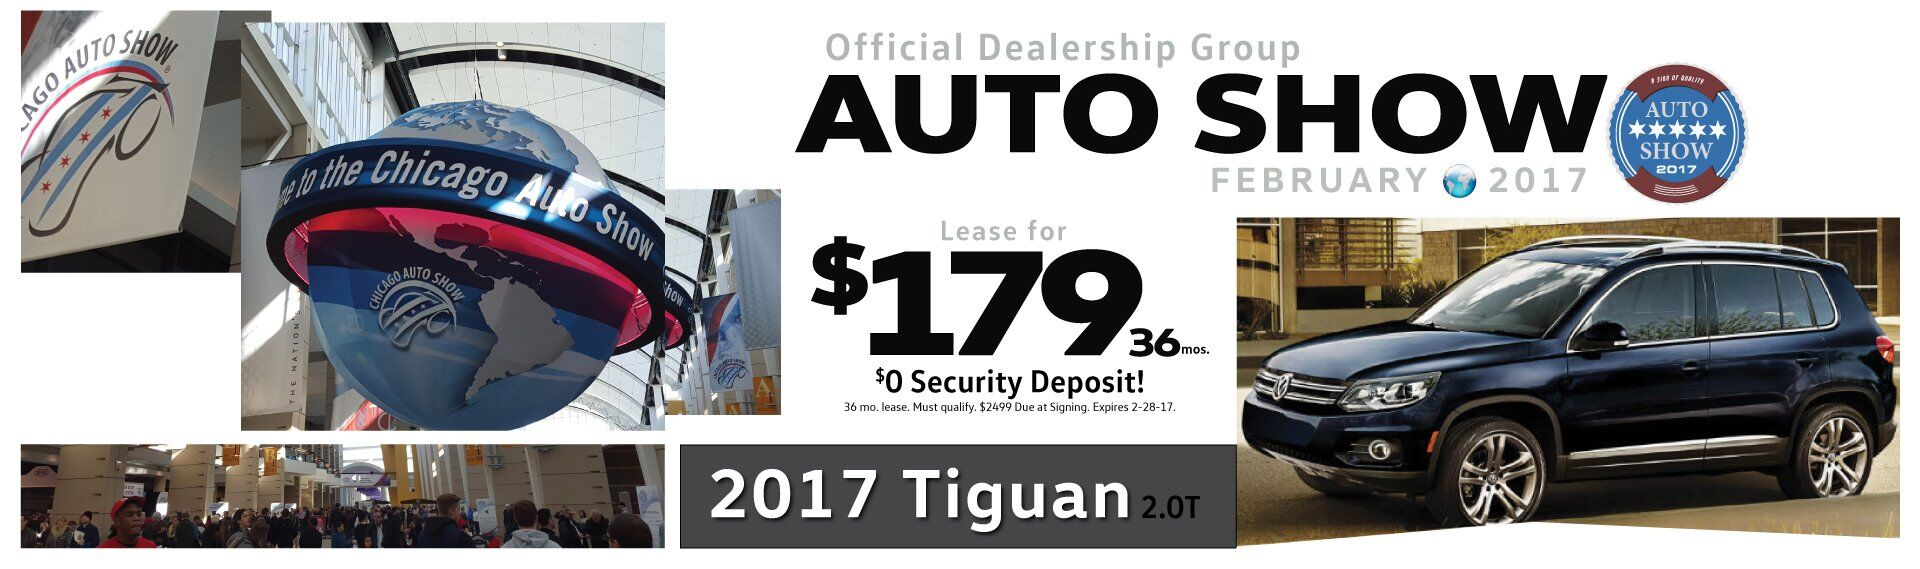 Lease a new tiguan for as low as $179 a month